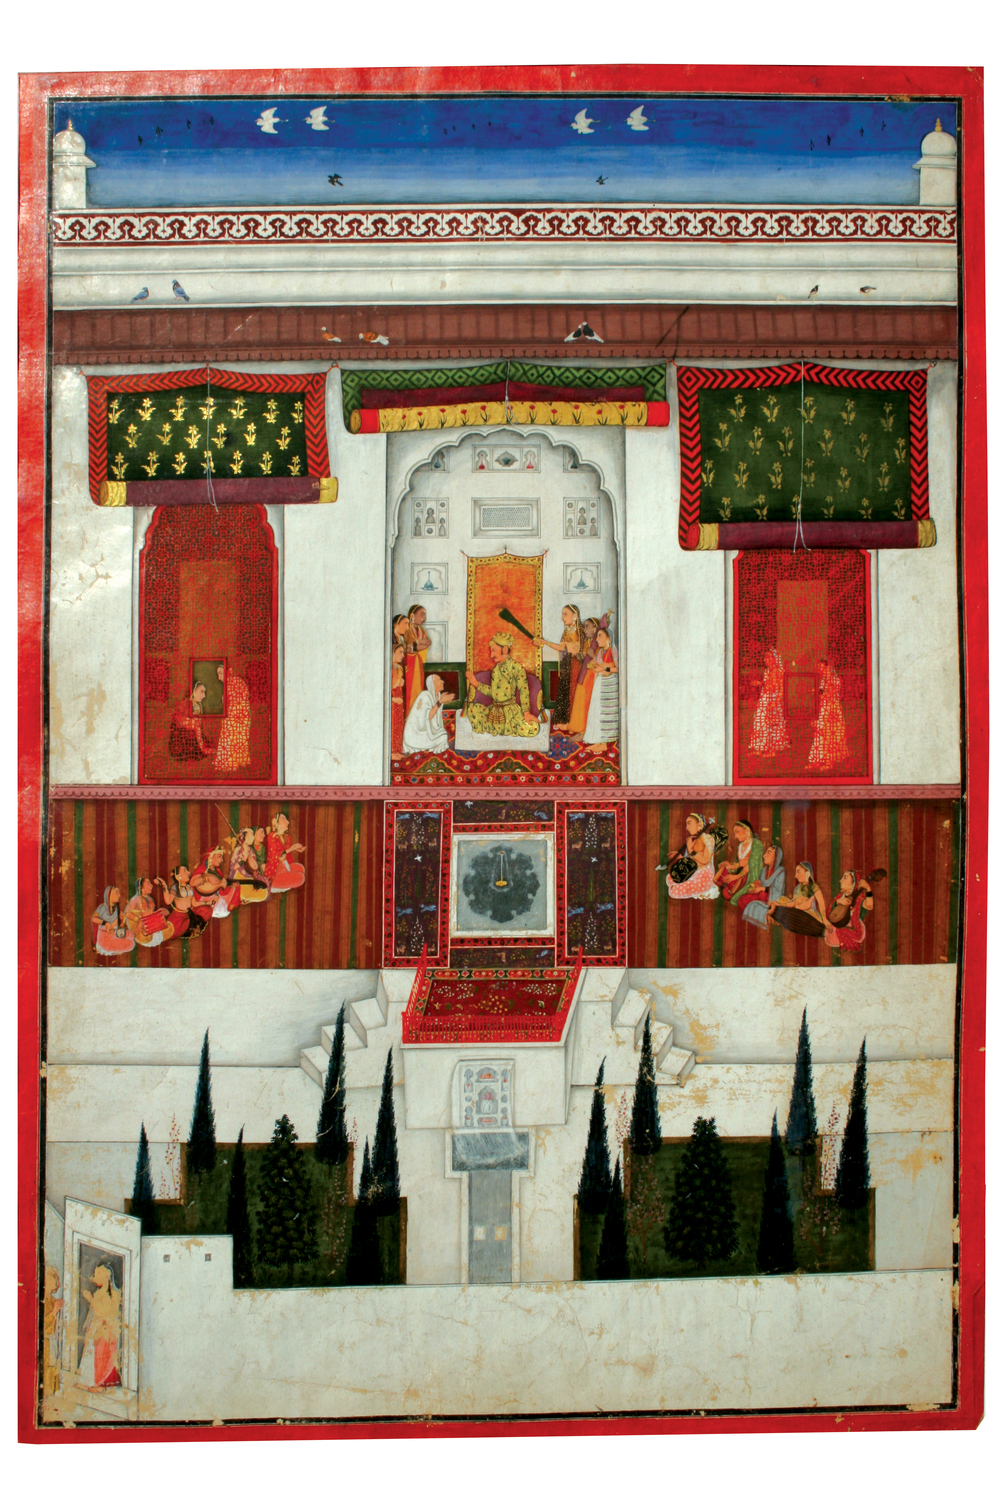 King Kasma in His Inner Apartment , c. 1650.Folio from a dispersed Bhagavata Purana series. Pahari.Opaque watercolor and gold on paper, 49.5 cm x 33 cm (19.4 in x 12.9 in). Private Collection